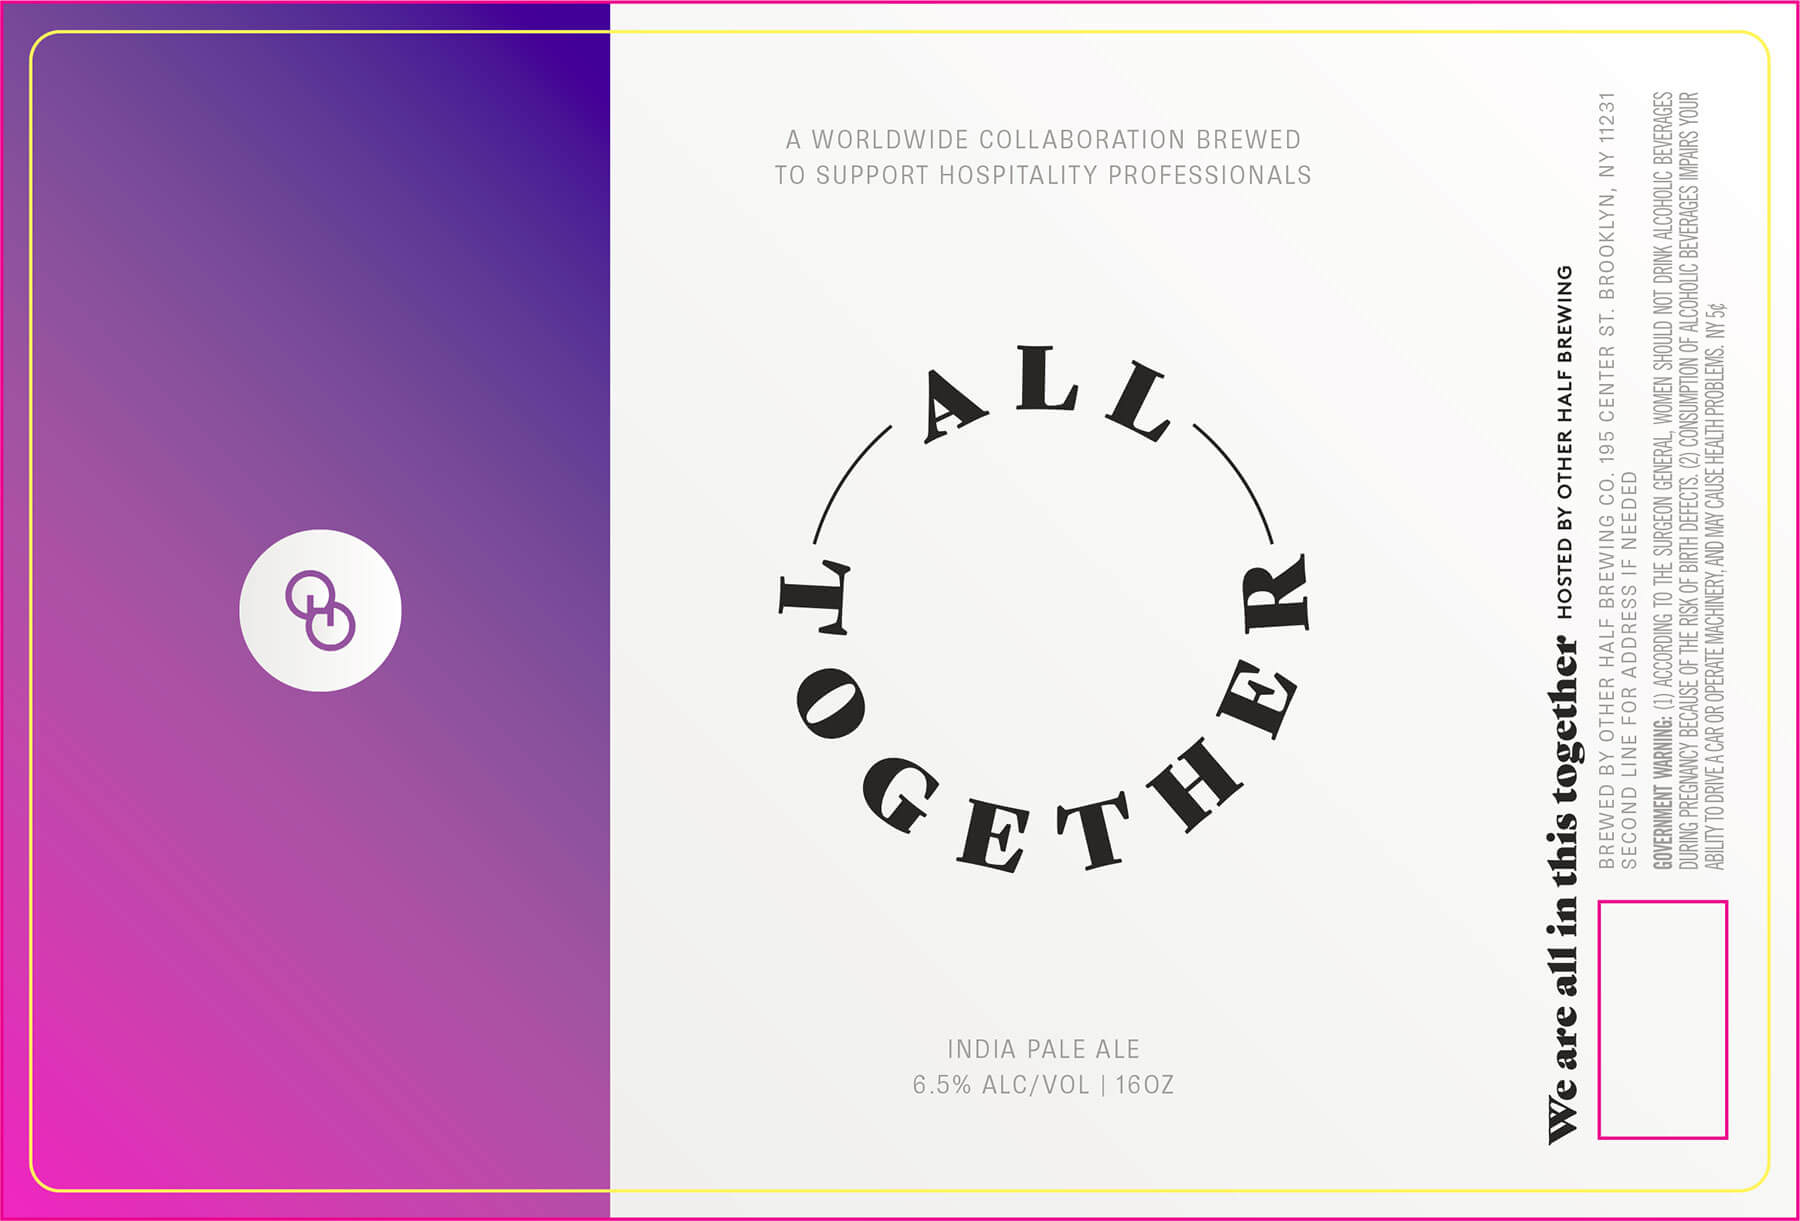 Label design for 16 oz. cans of the All Together by Other Half Brewing Company